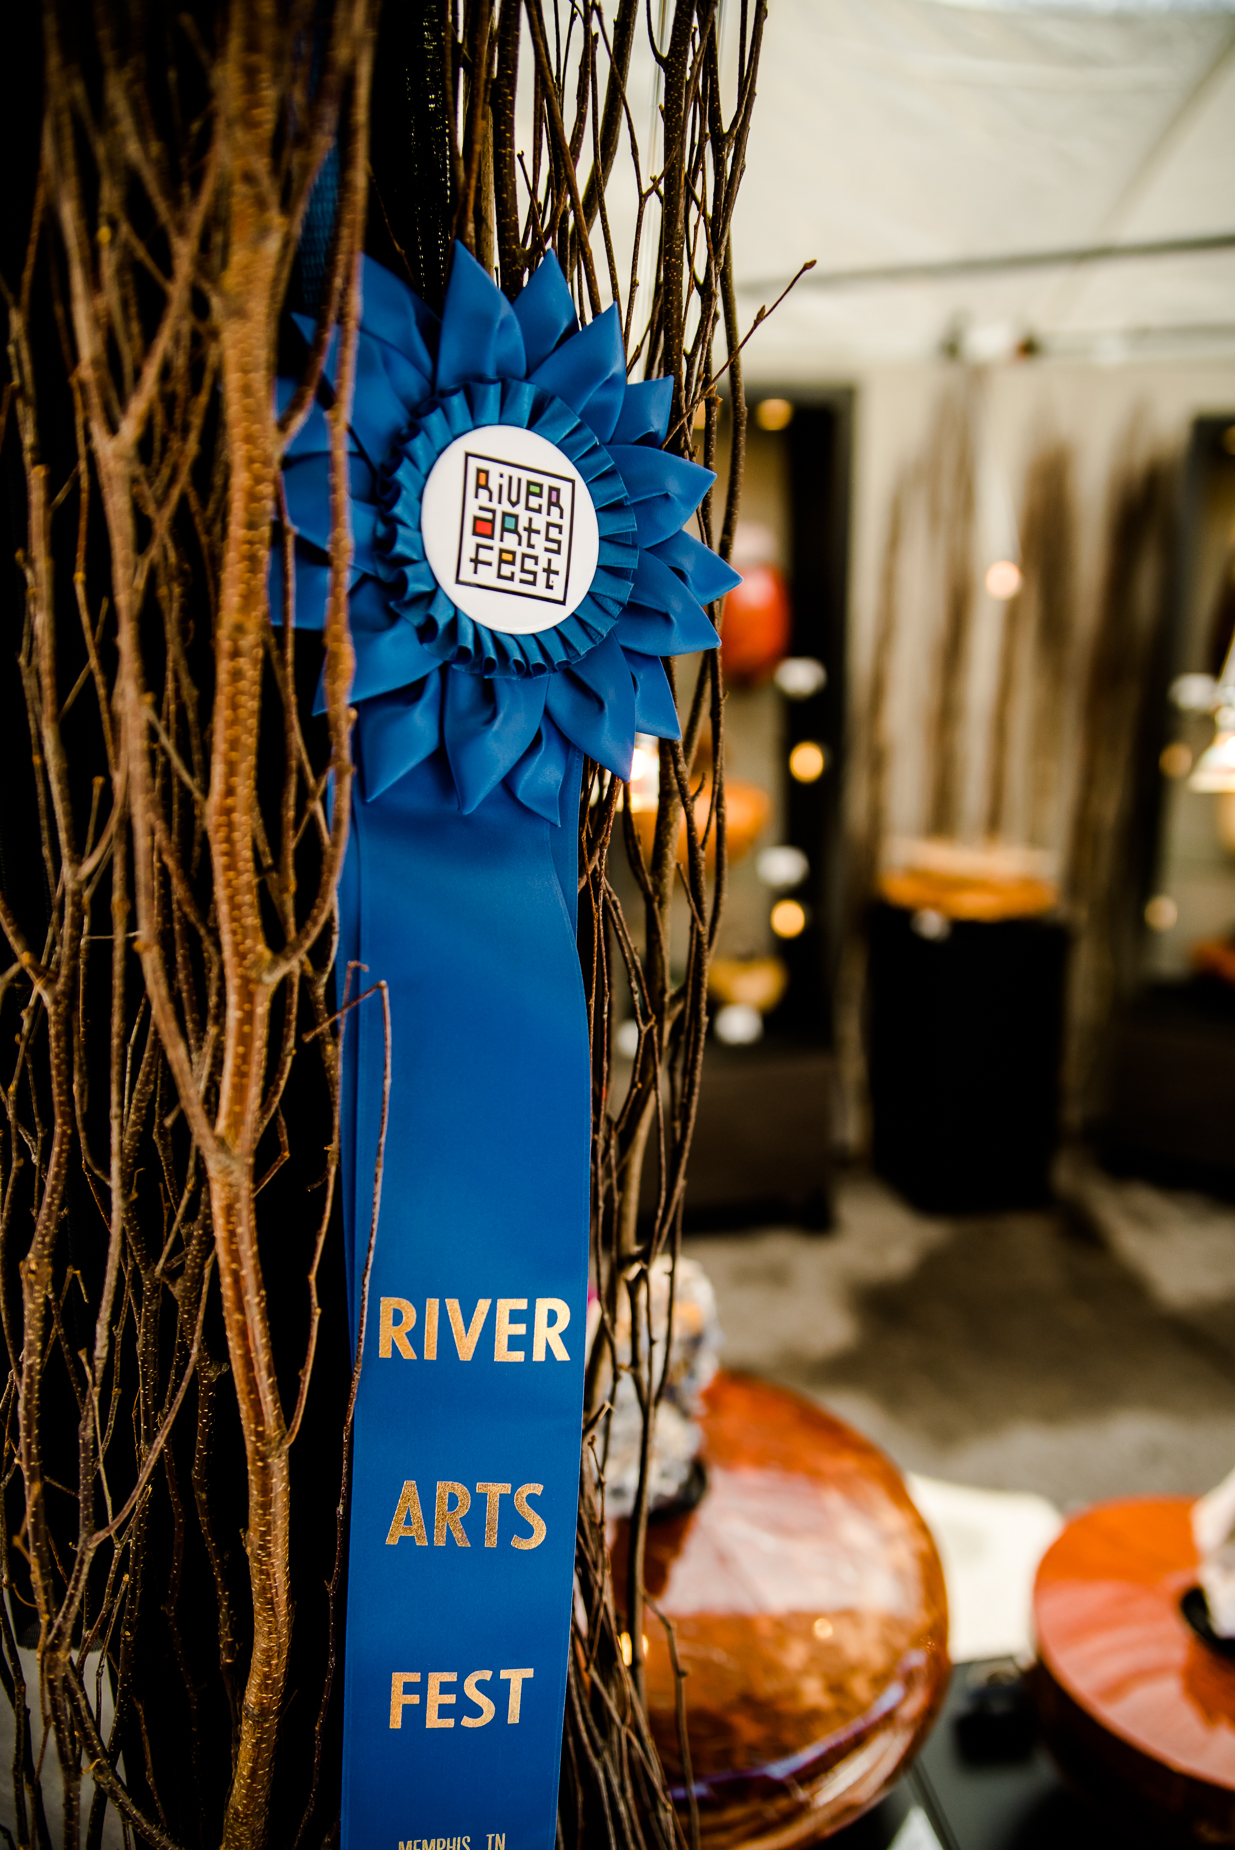 In 2016, RiverArtsFest was named one of   The Best Festivals & Fairs in Tennessee   by  Travel Magazine.